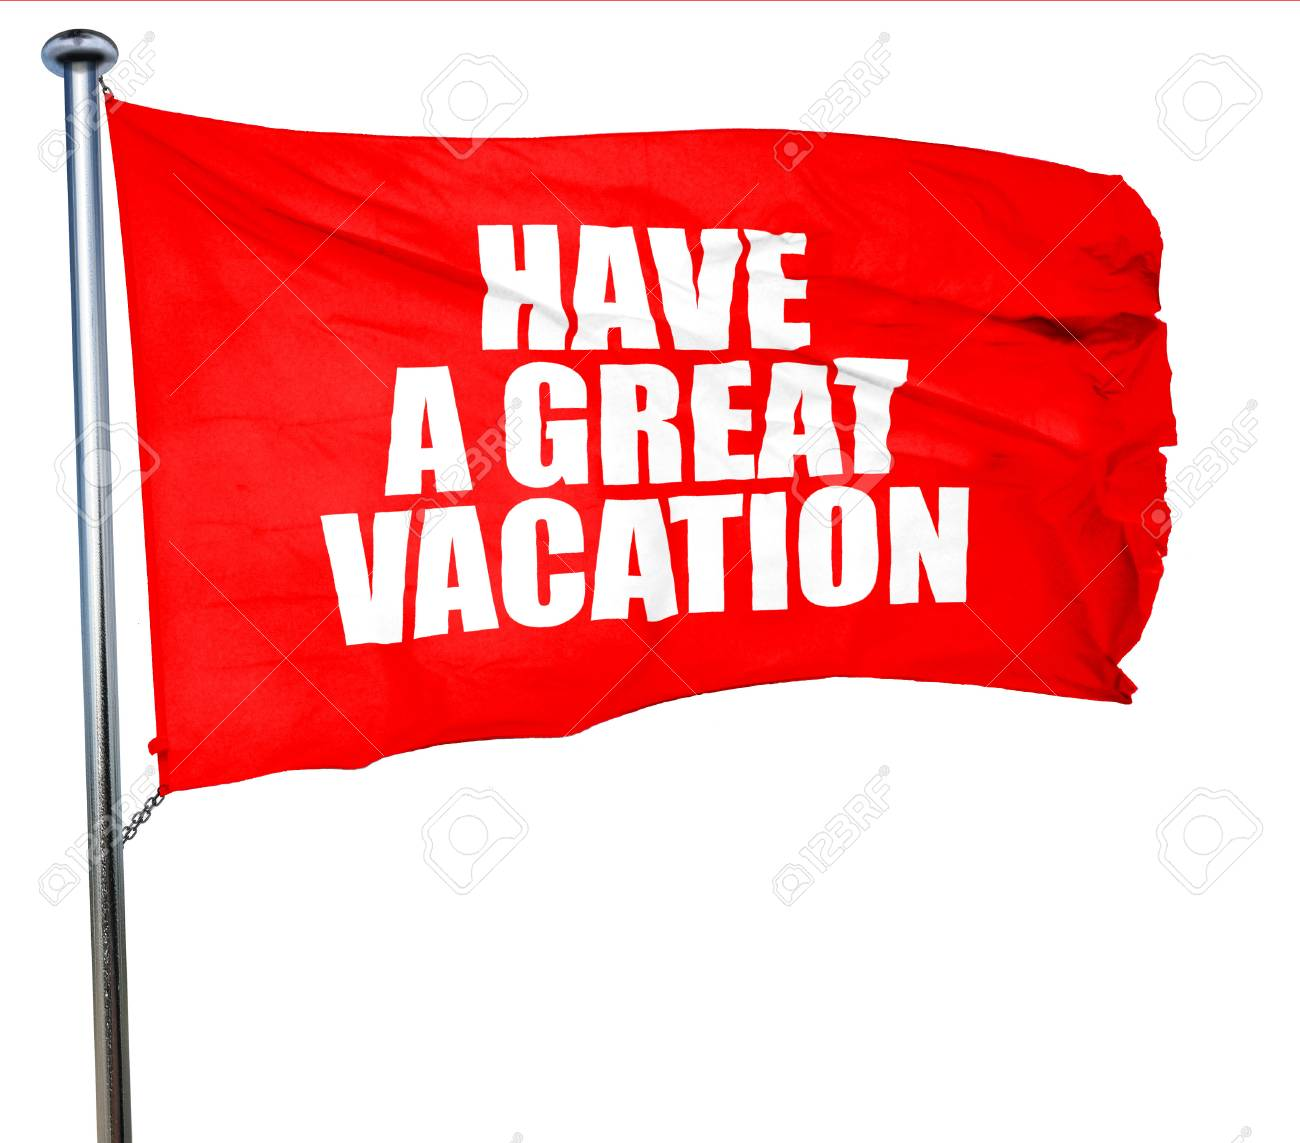 Have A Great Vacation 3D Rendering Red Waving Flag Stock Photo